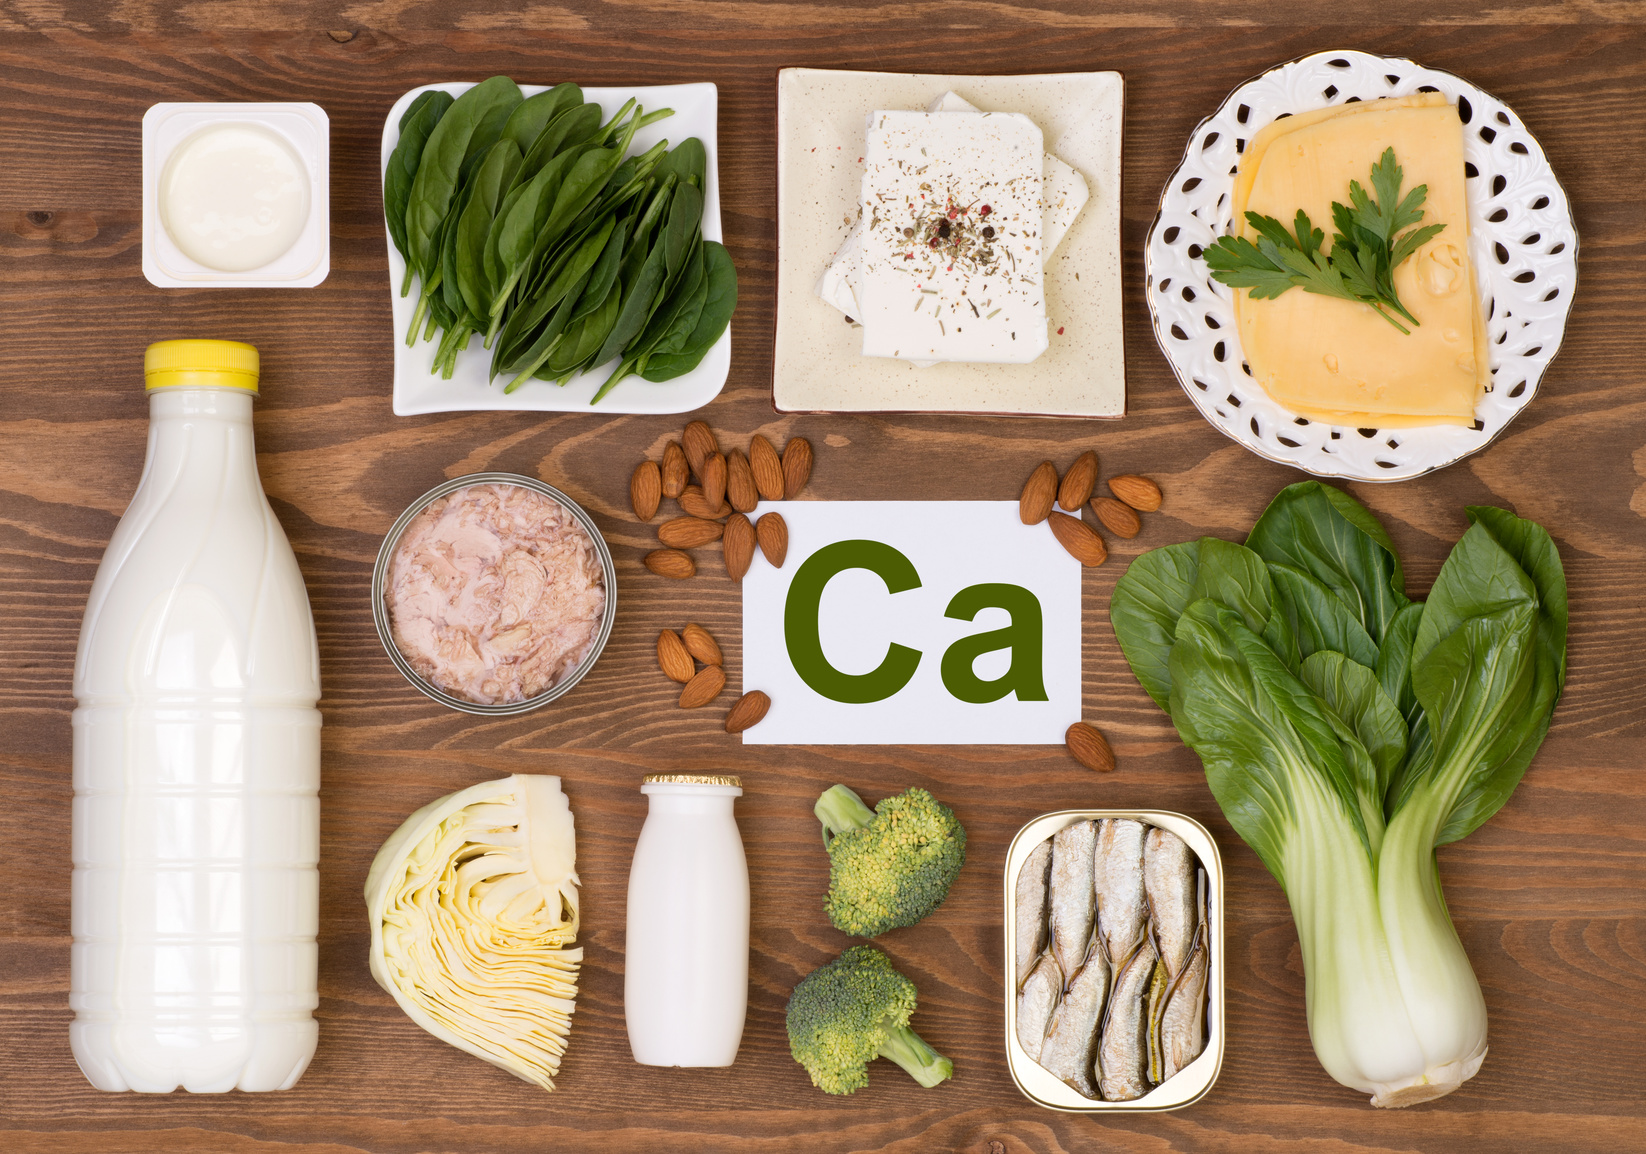 Food containing calcium